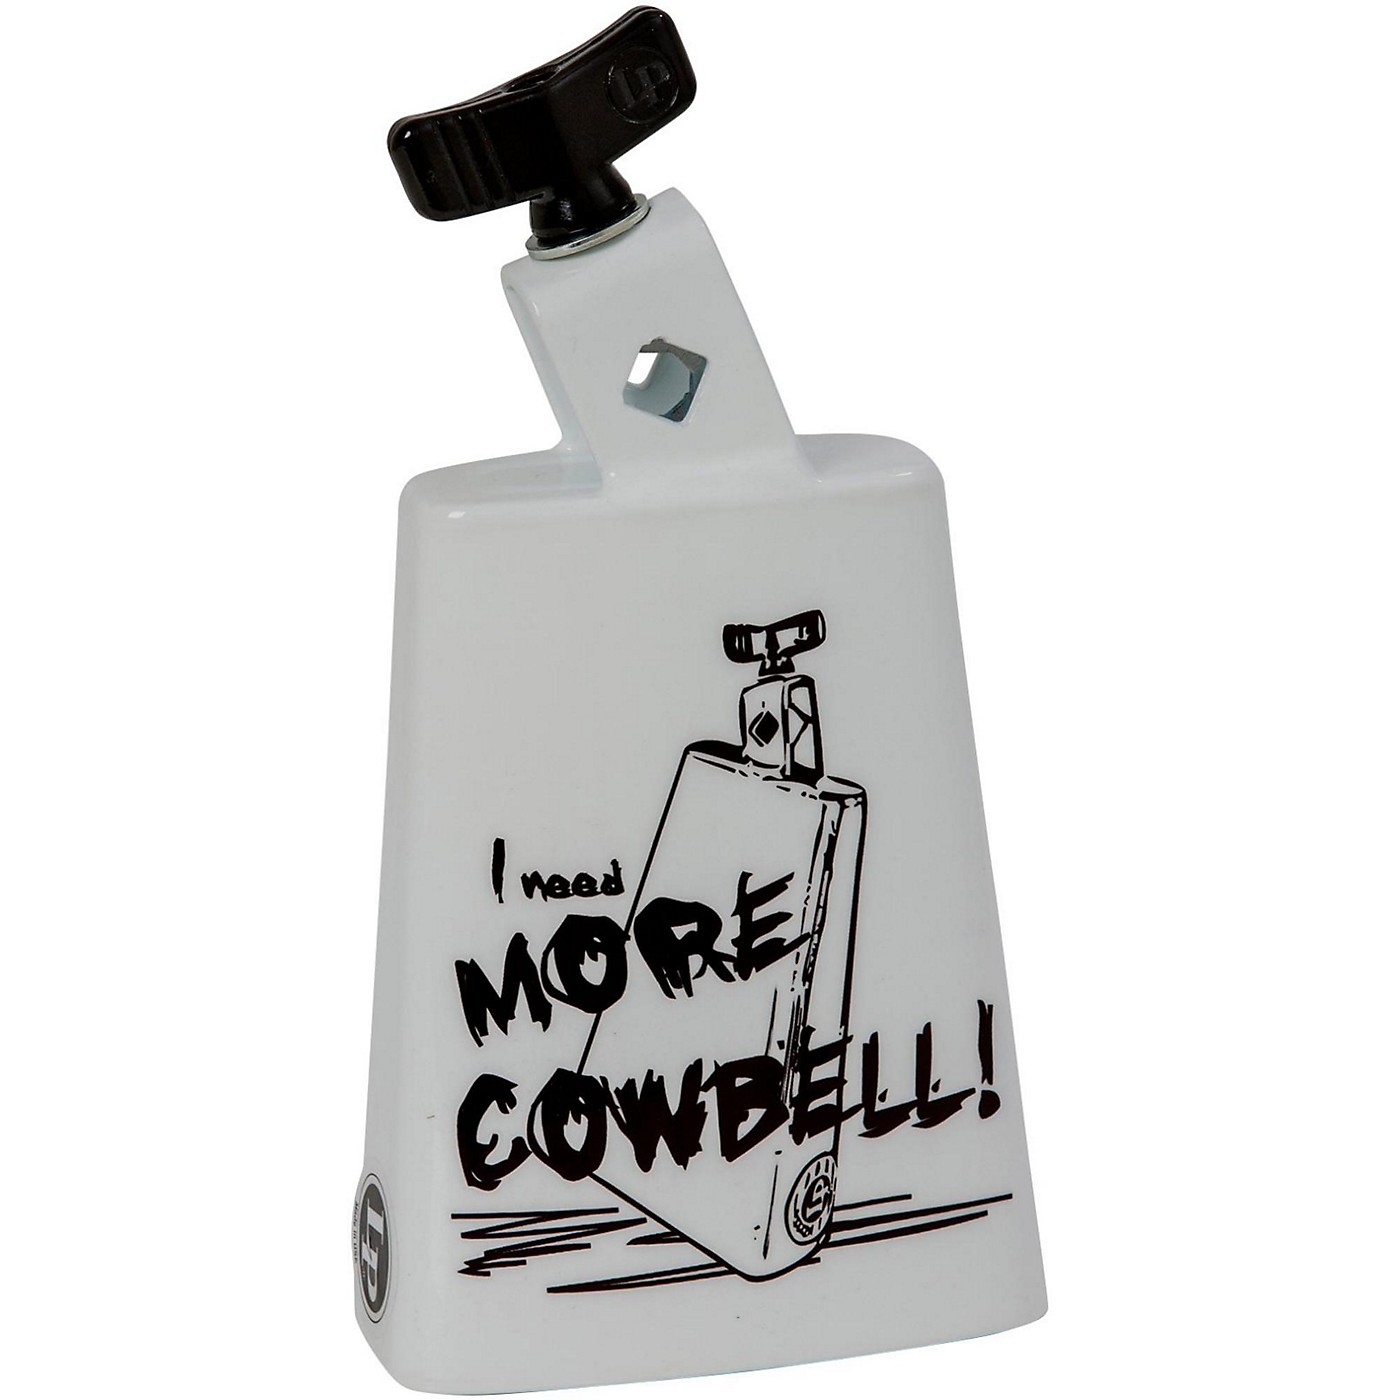 LP Collectabells Cowbell - More Cowbell thumbnail